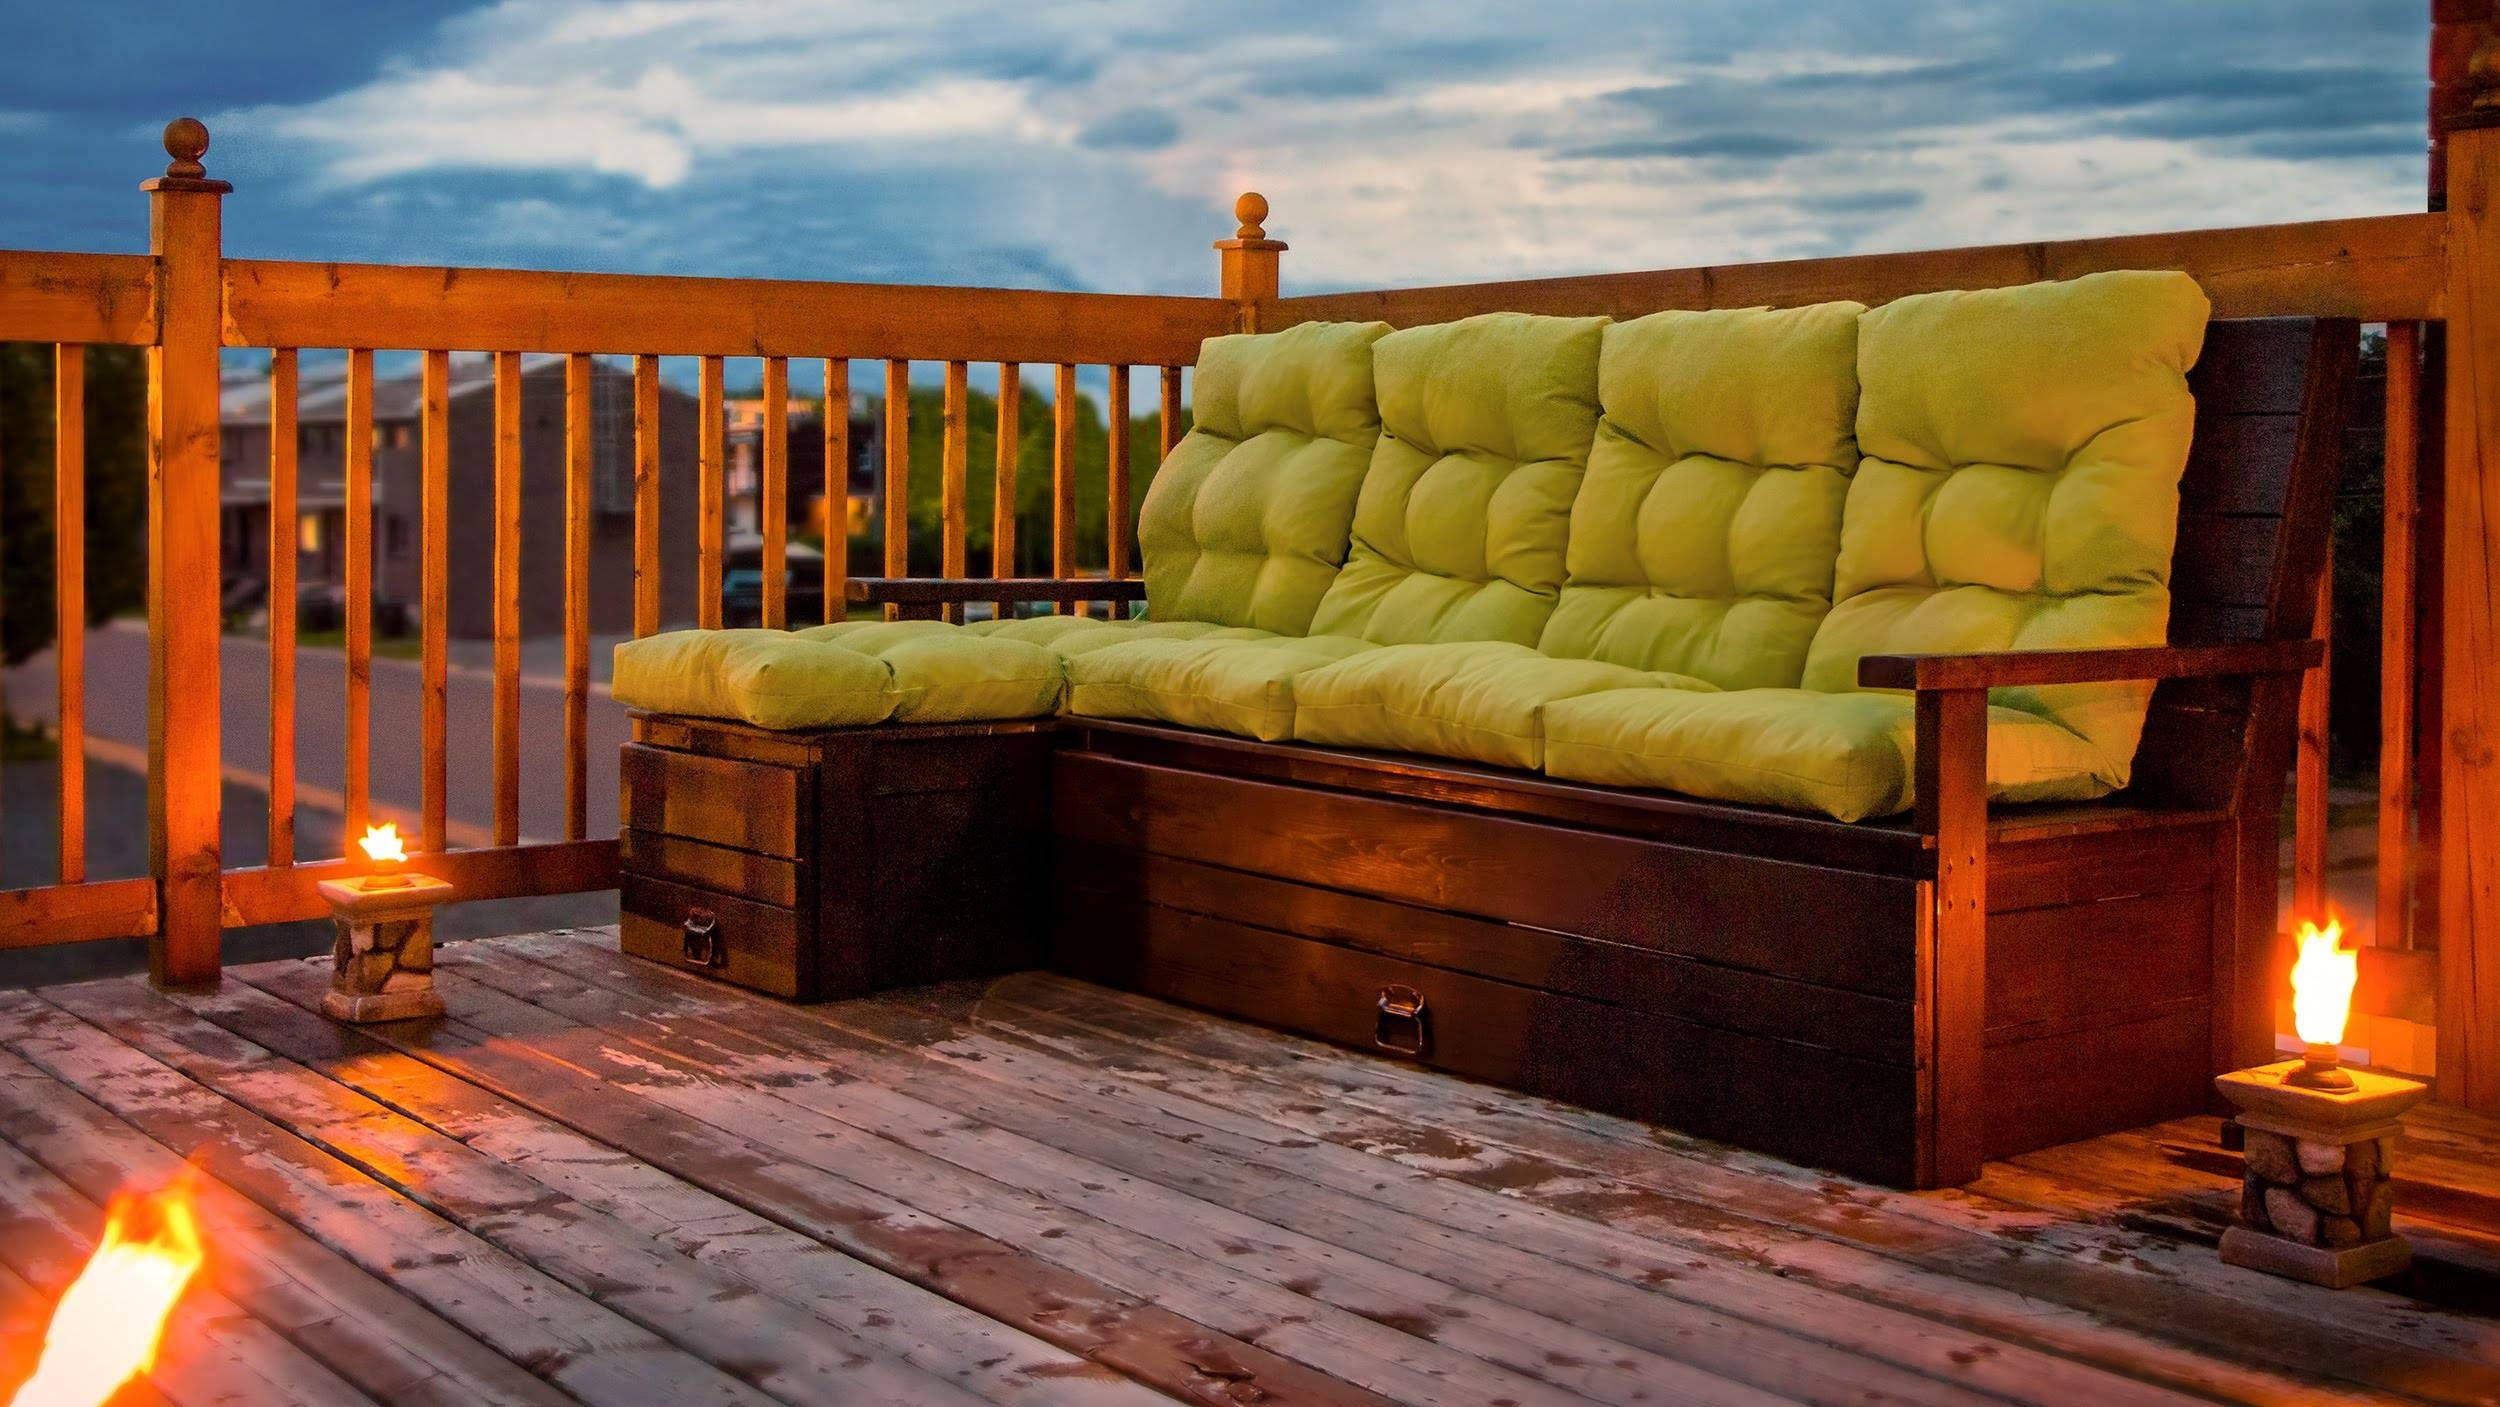 Diy Outdoor Wood Sectional Sofa/bench With Storage - Construction within Building A Sectional Sofa (Image 18 of 30)